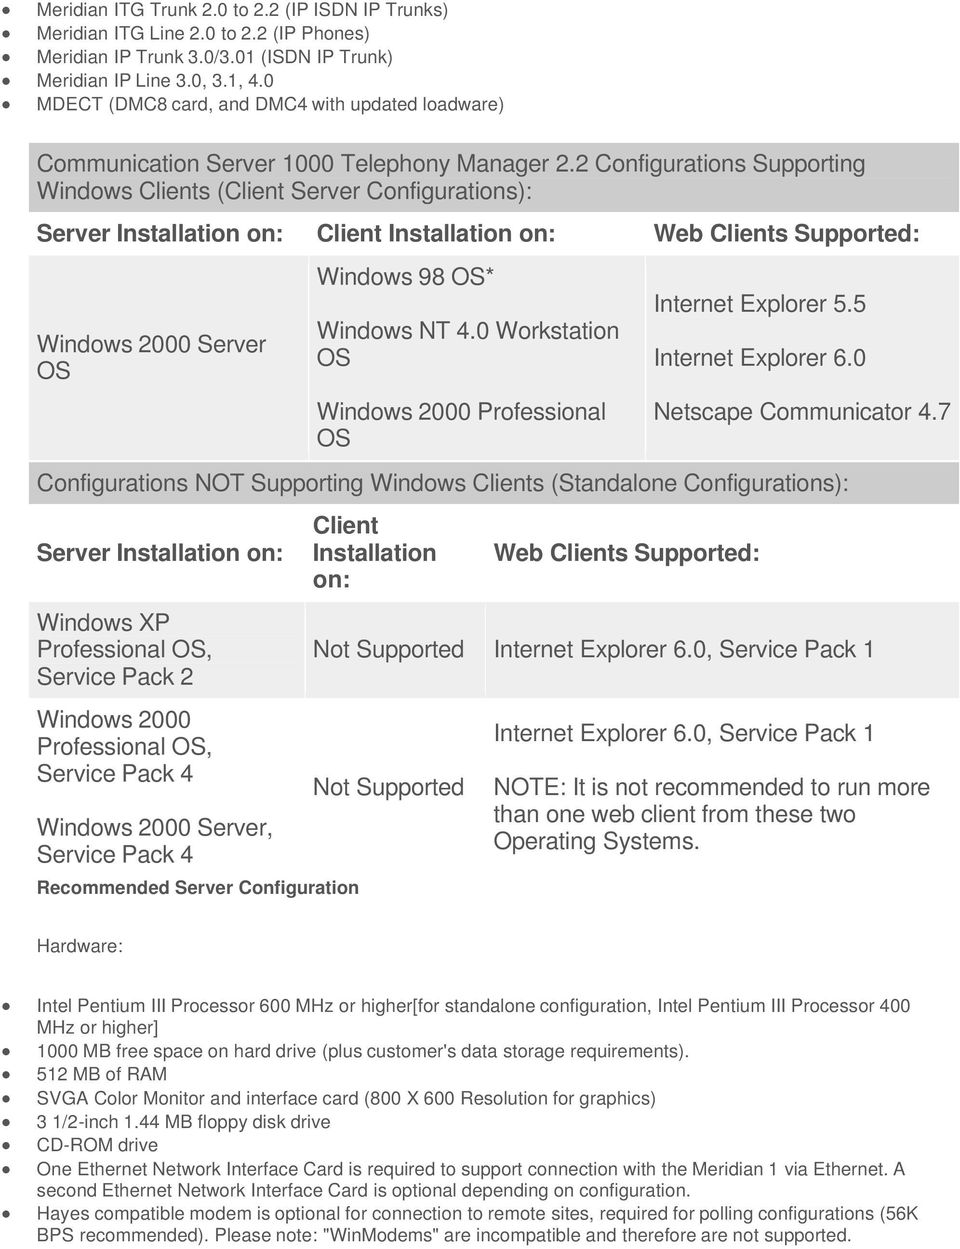 2 Configurations Supporting Windows Clients (Client Server Configurations): Server Installation on: Client Installation on: Web Clients Supported: Windows 2000 Server OS Windows 98 OS* Windows NT 4.